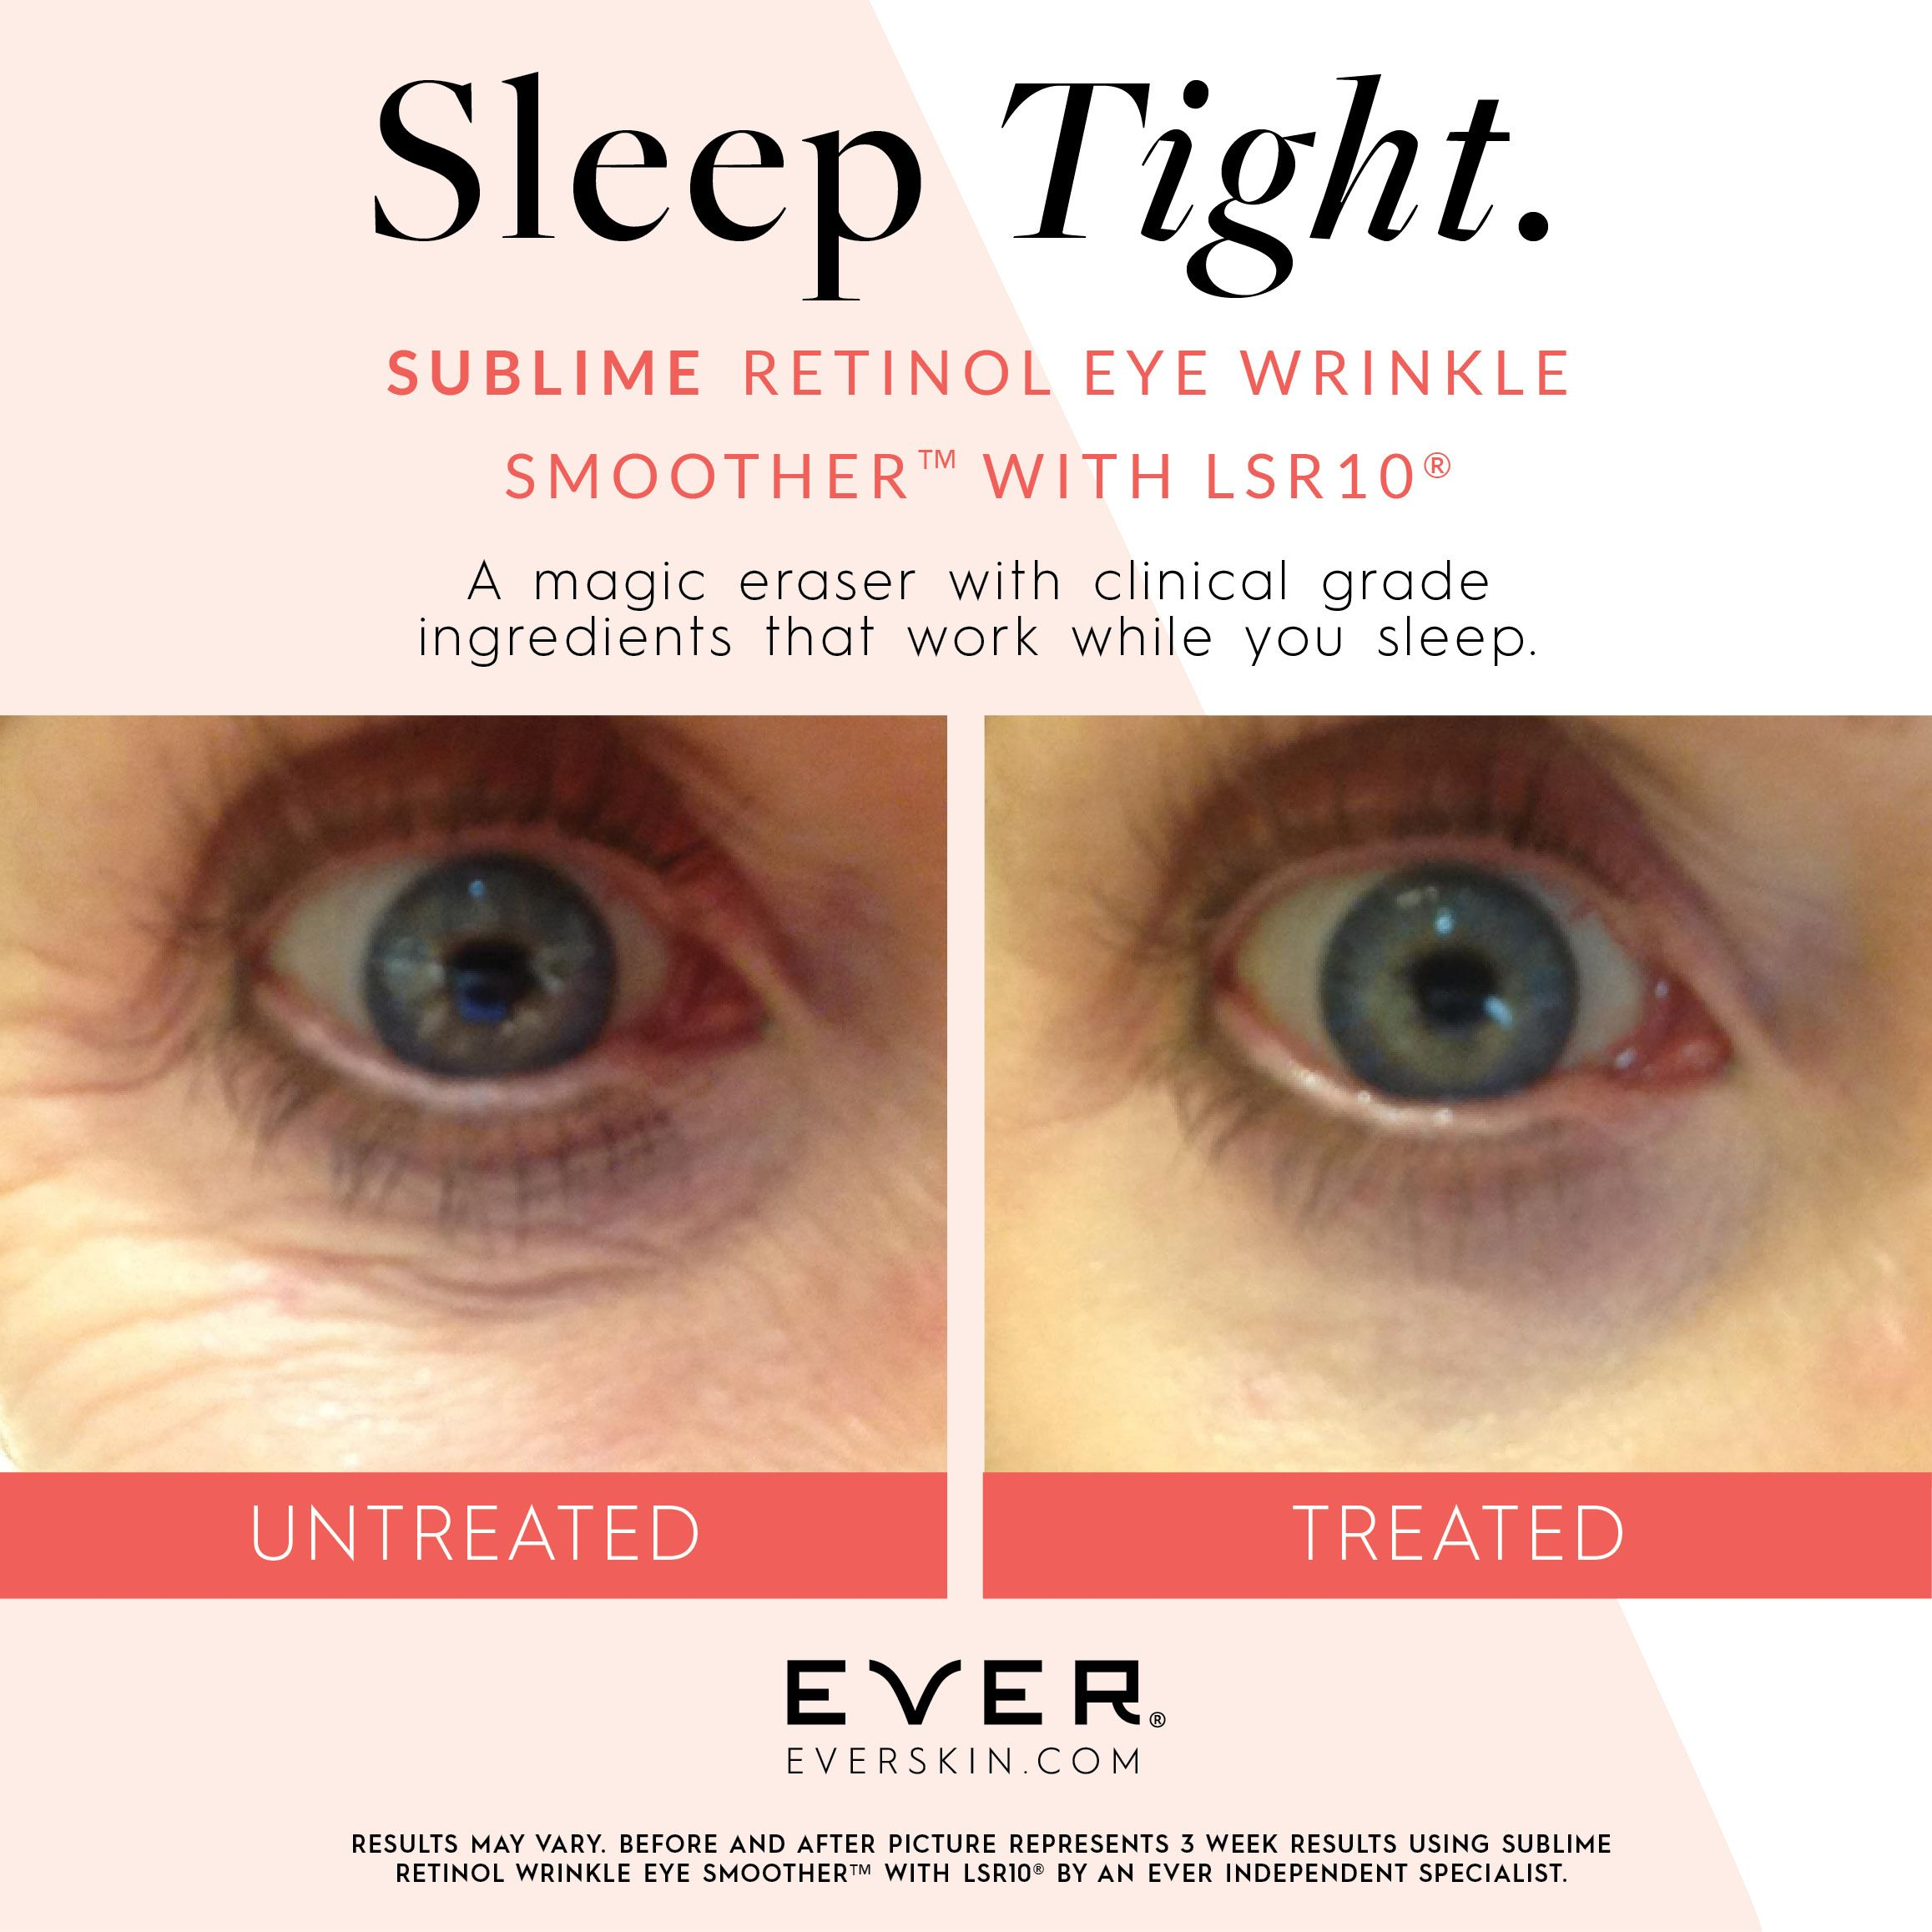 Sublime Retinol Eye Wrinkle Smoother Skin Care Dark Spots Skin